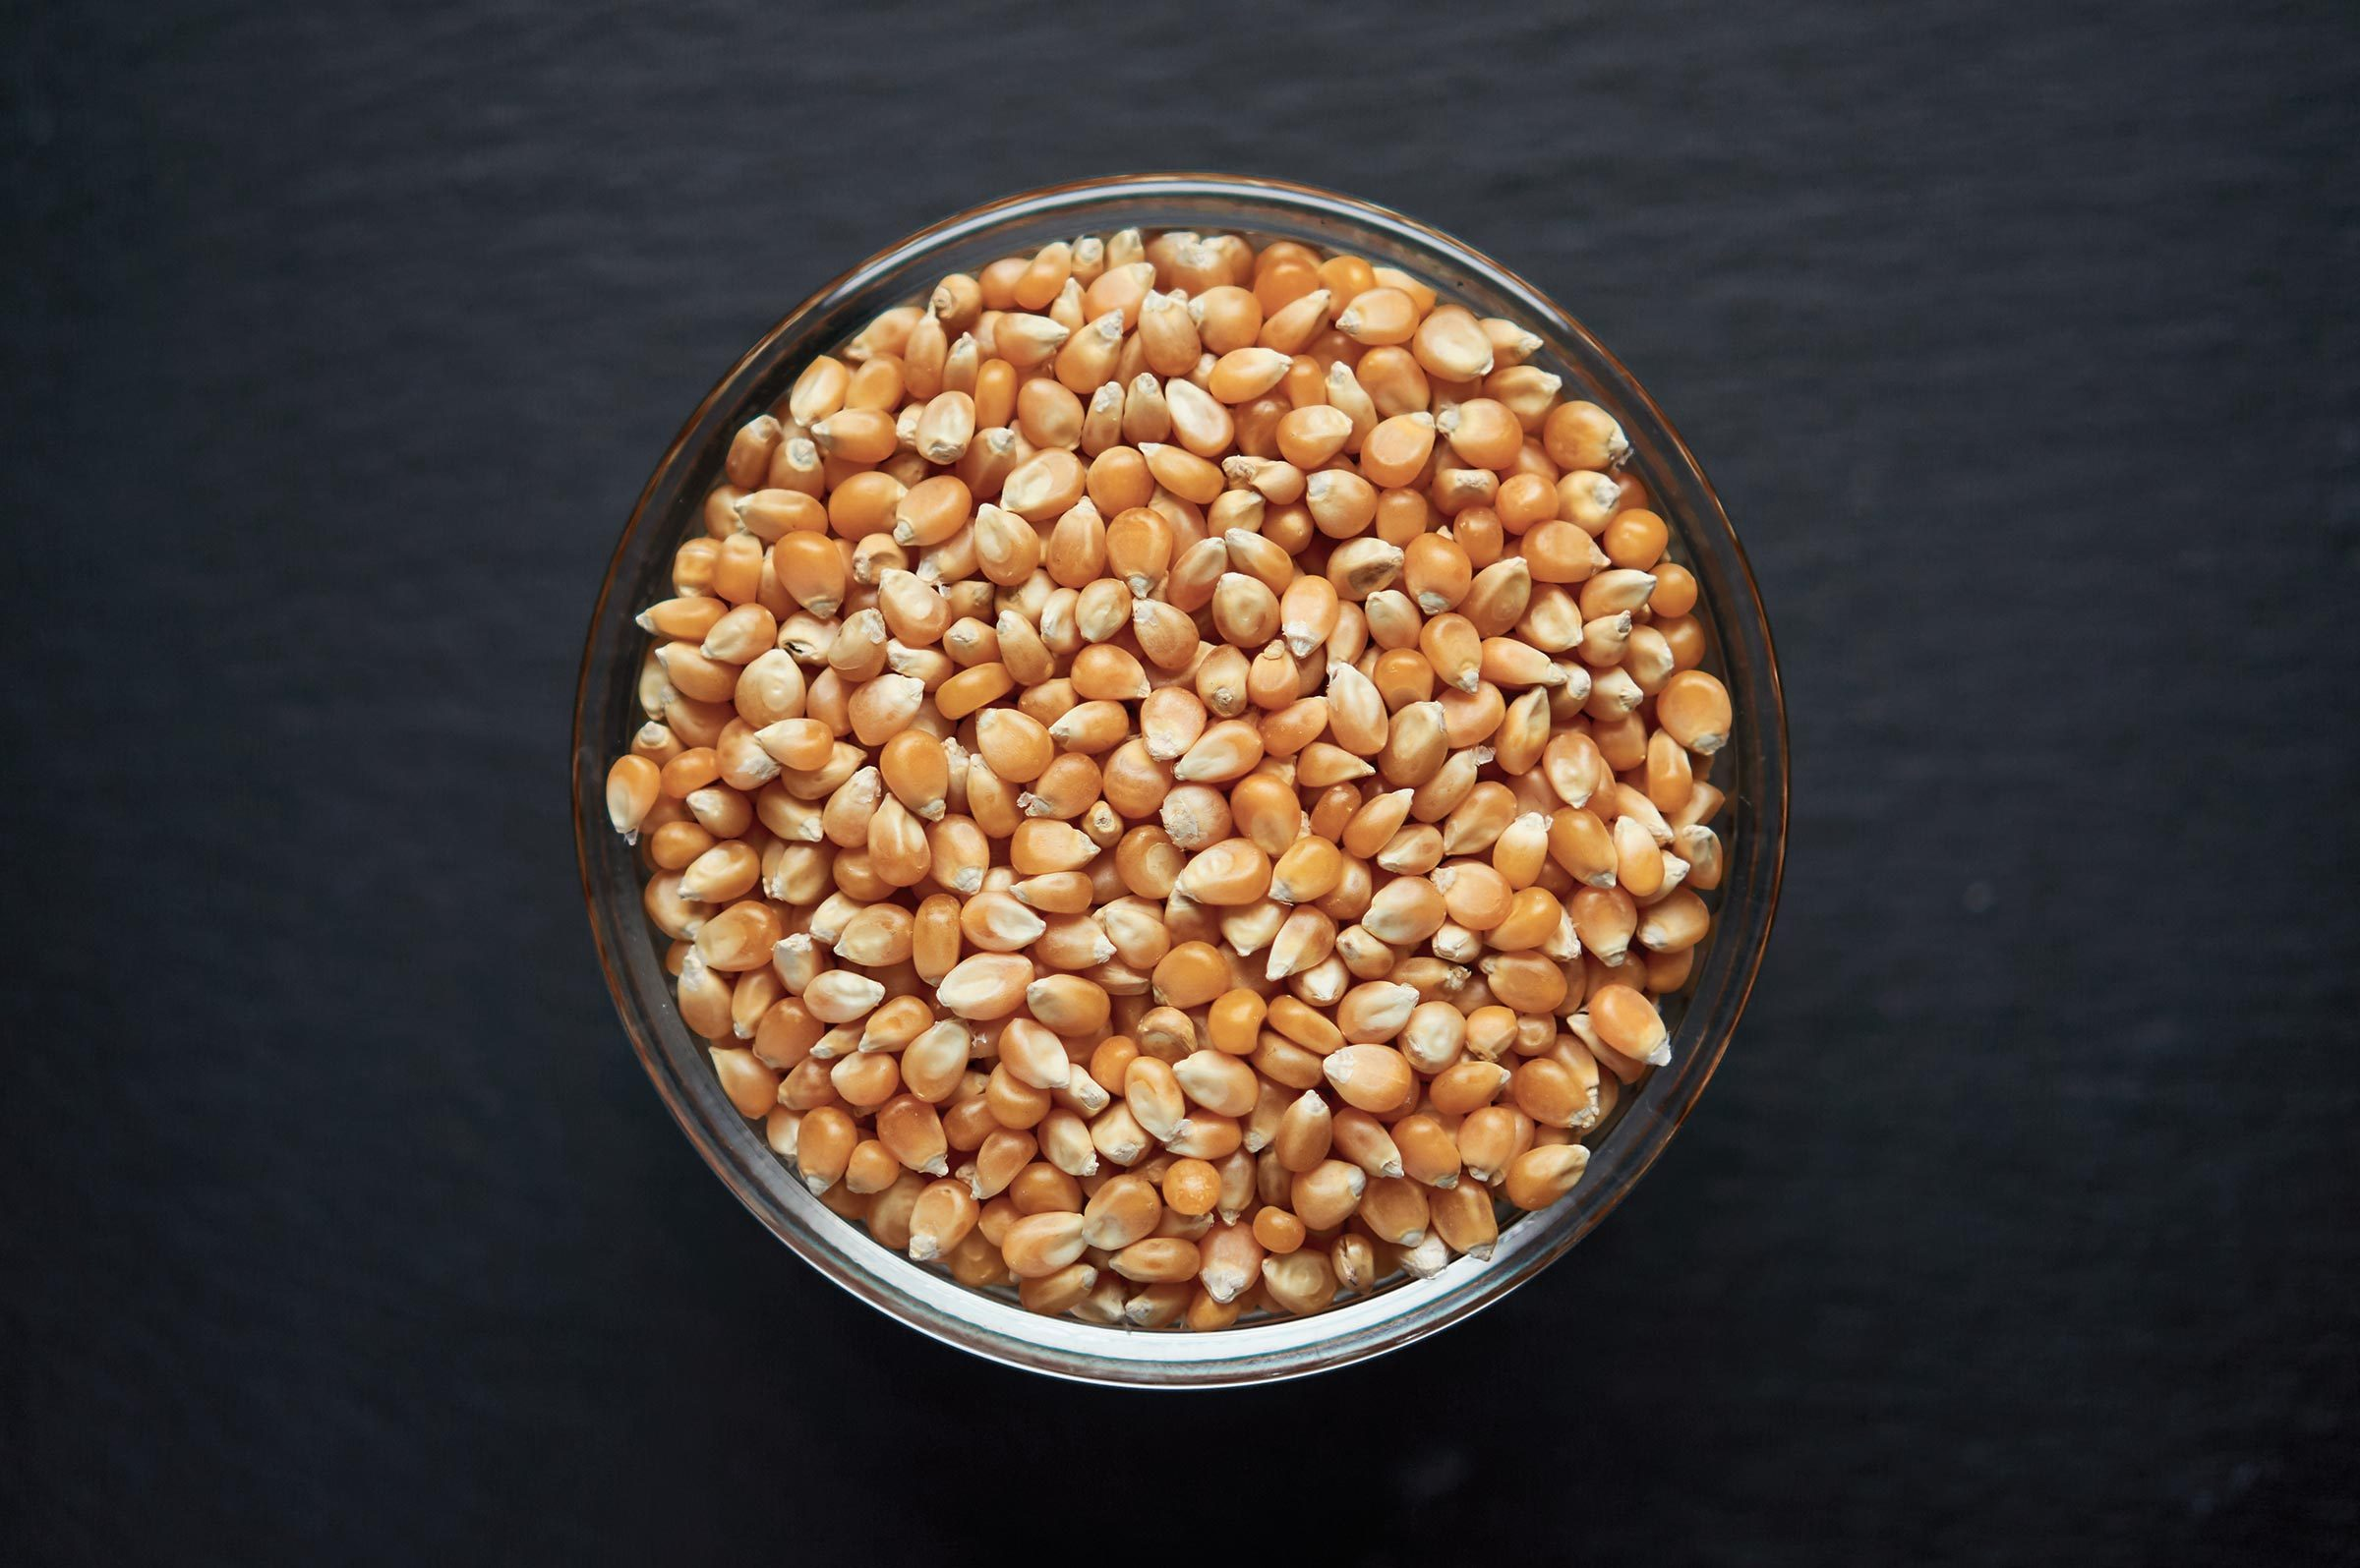 Corn seeds in a bowl on dark background. Vegetarian organic food.